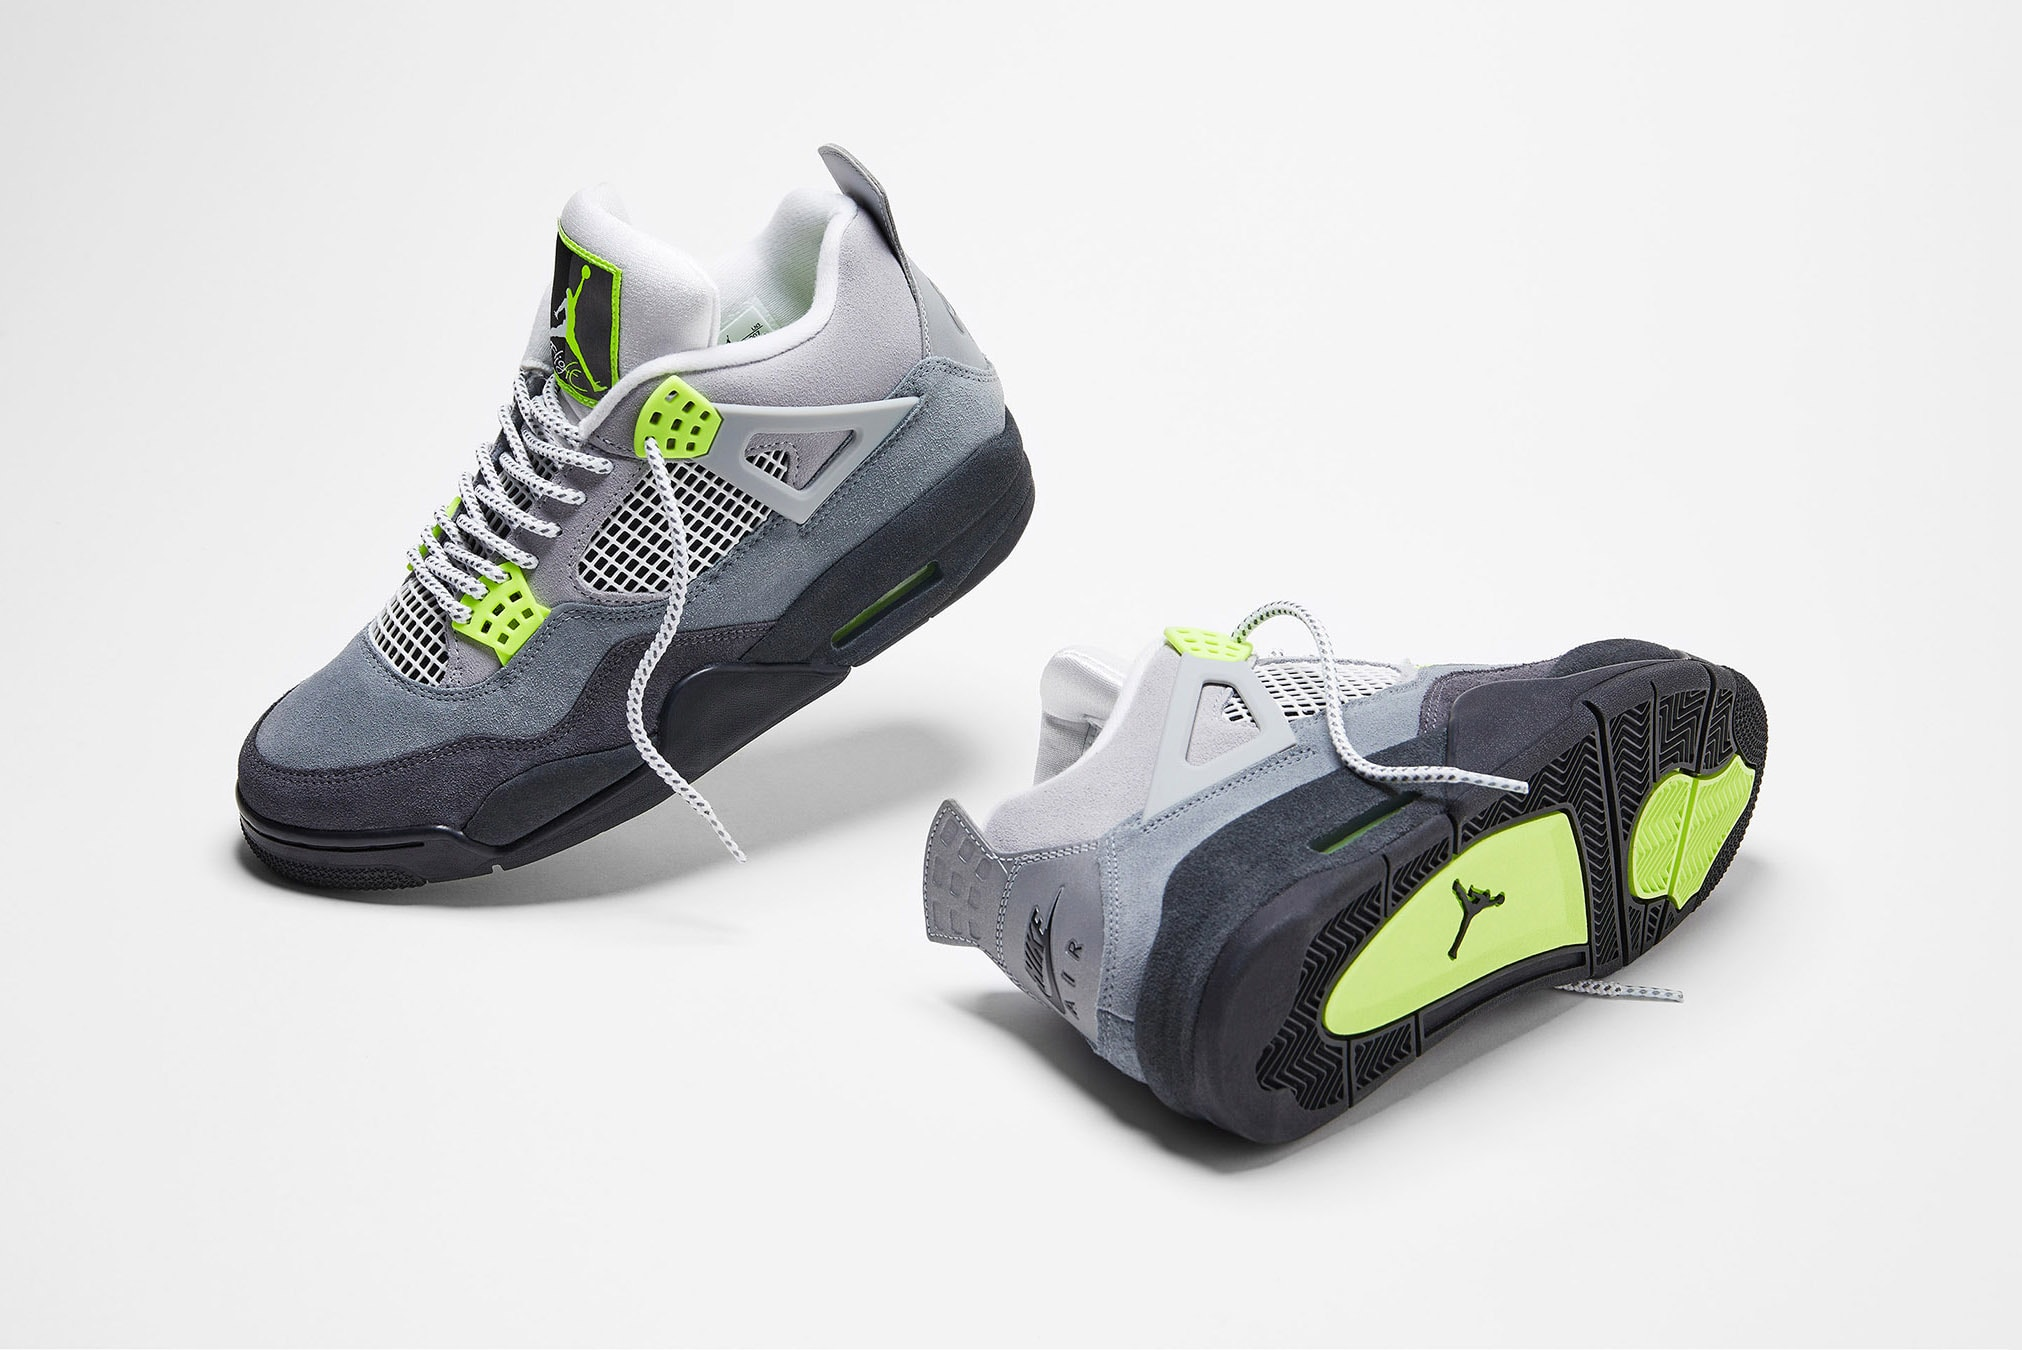 3月21日 発売予定 AIR JORDAN 4 RETRO SE NEON 95 (CT5342-007)